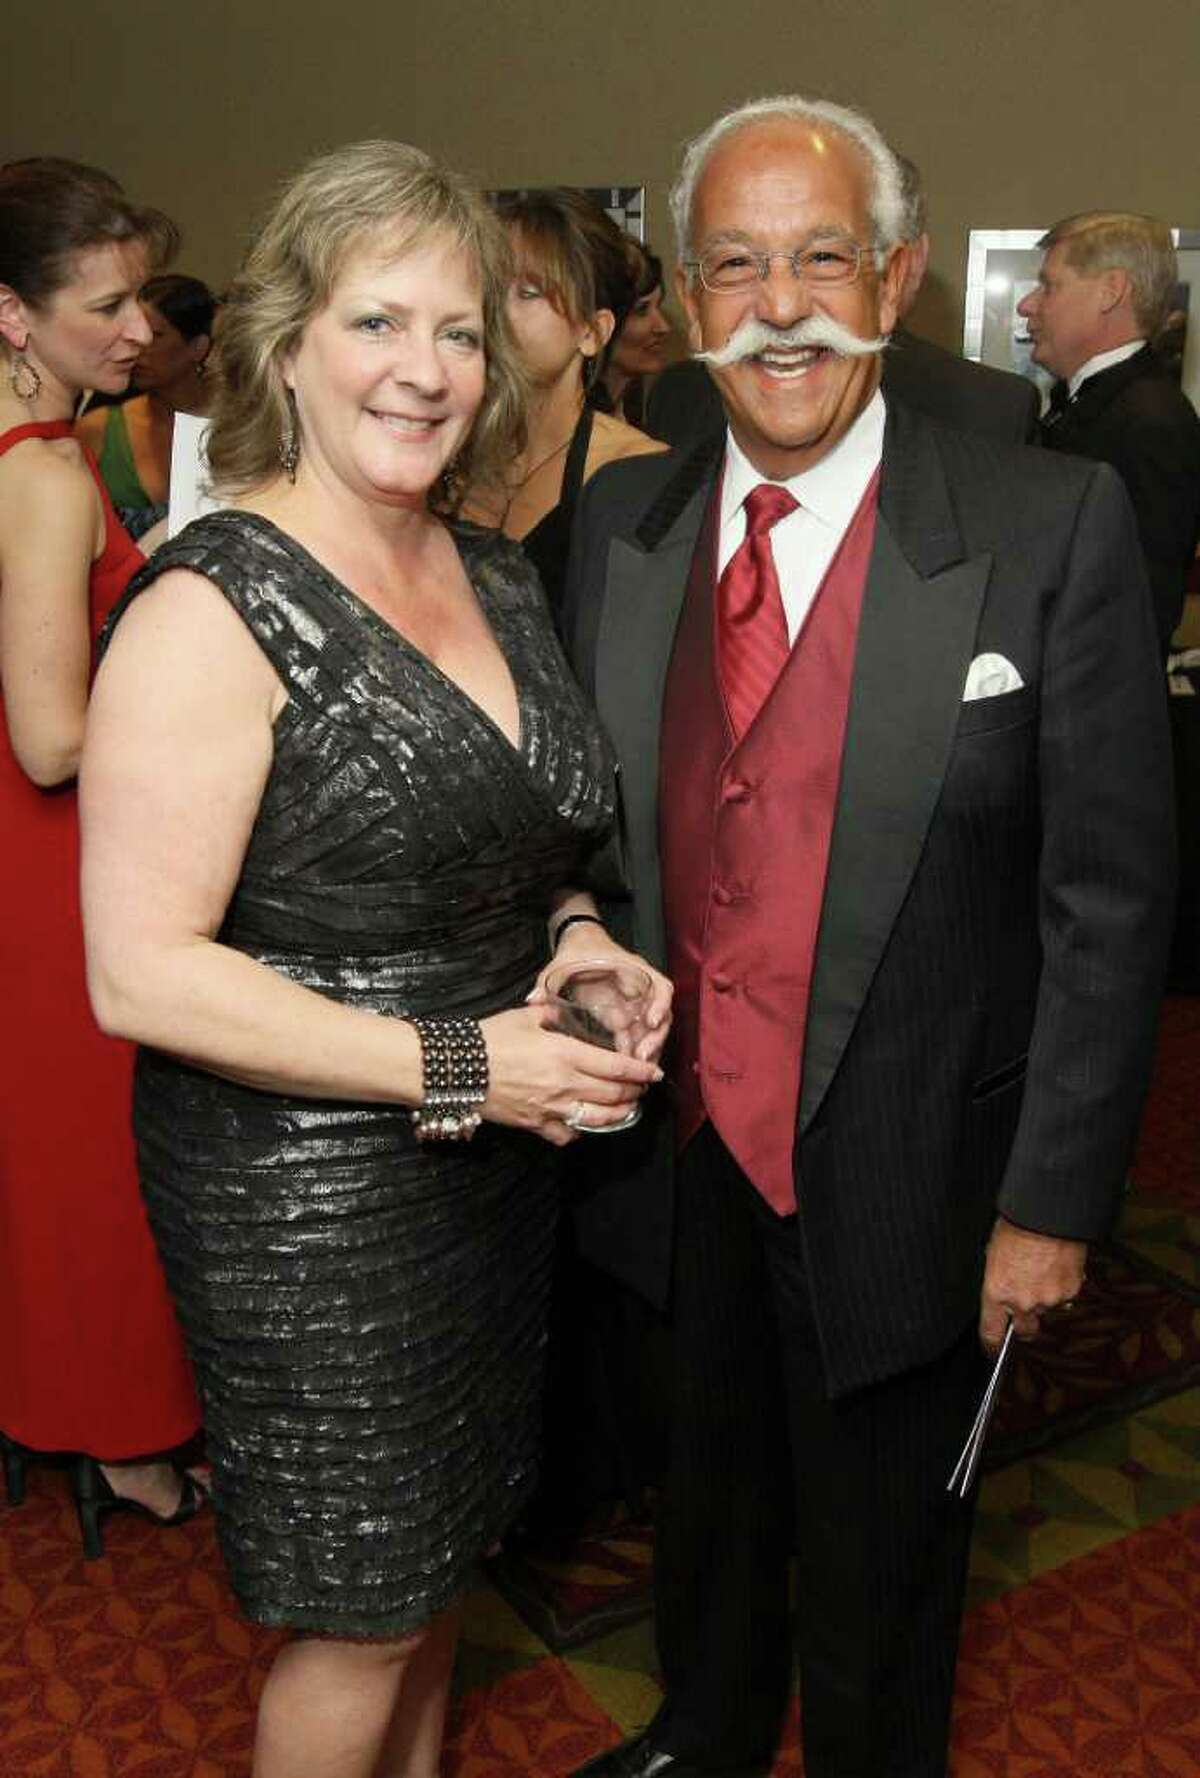 Were you seen at The 14th Annual Fire & Ice Gala to benefit the Northeastern New York Chapter of the American Red Cross on Saturday, March 24, 2011 at the Hilton Garden Inn in Troy?